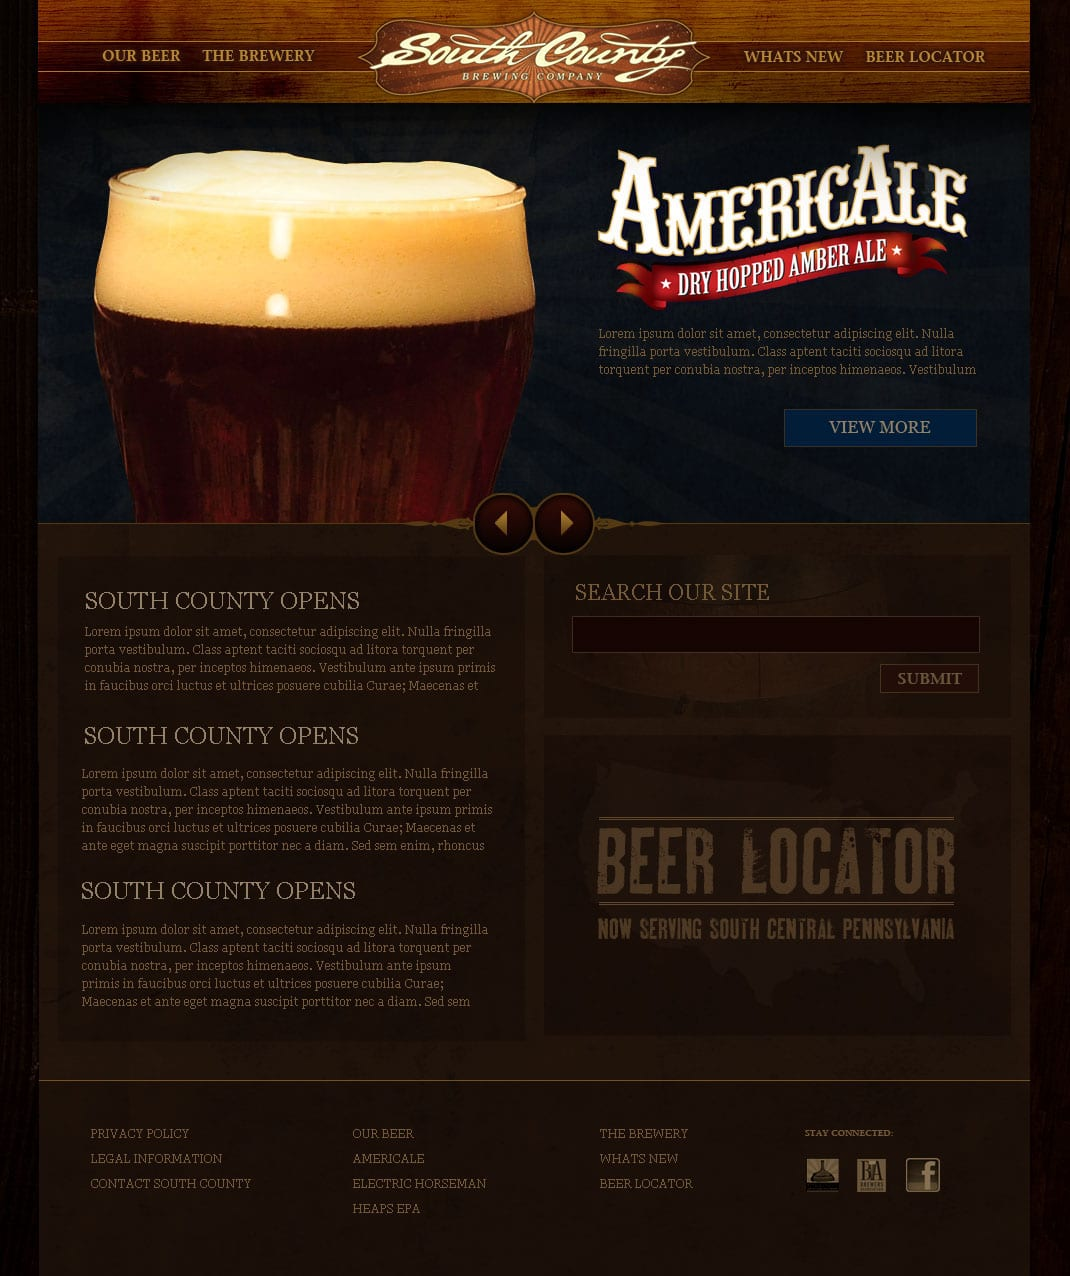 South County Brewing Company - Fawn Grove, PA - Wordpress Website Theme Design & Development by SG, LLC